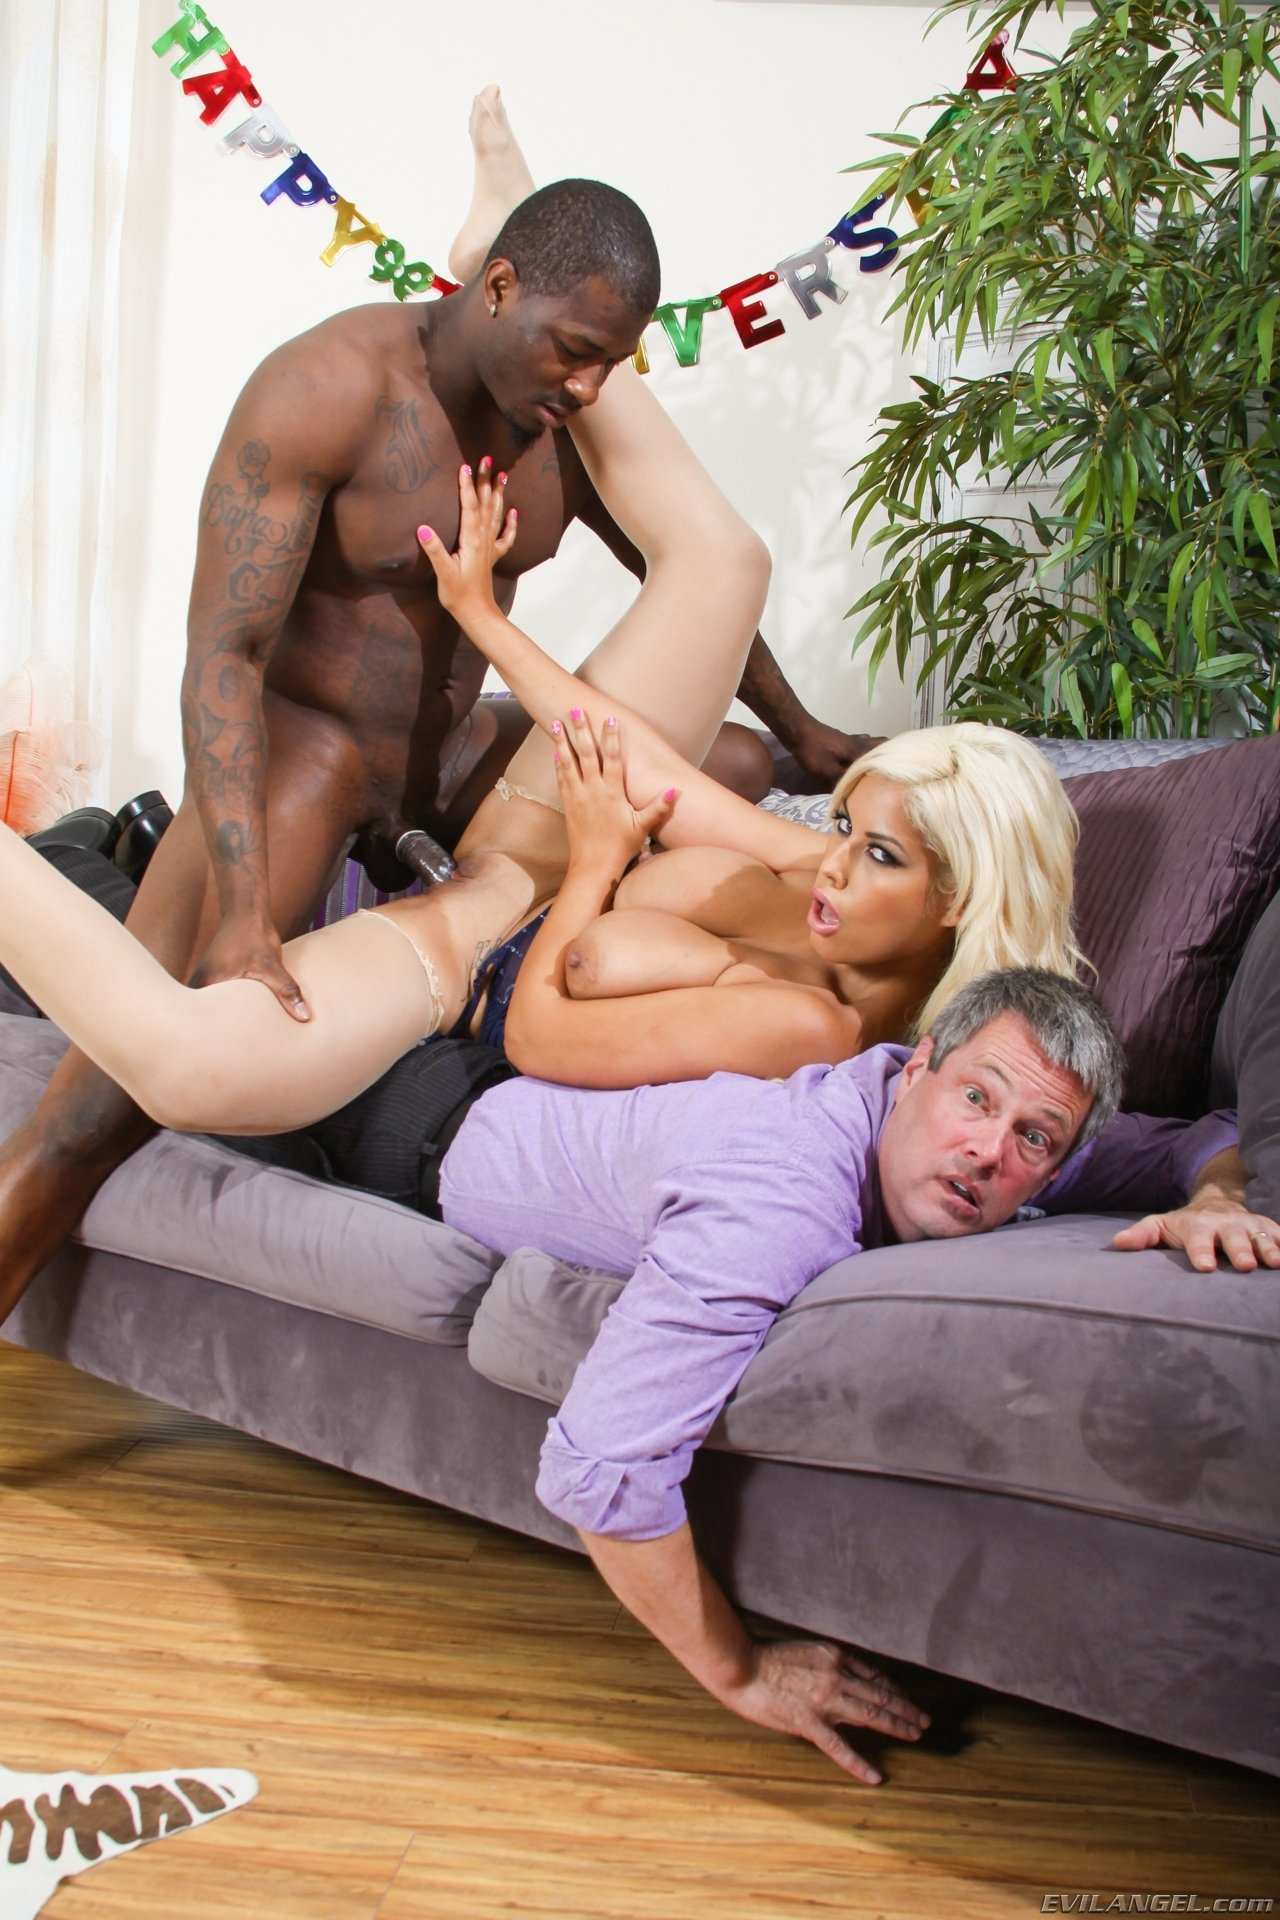 Black people naked sex Swinger party games Moms petit